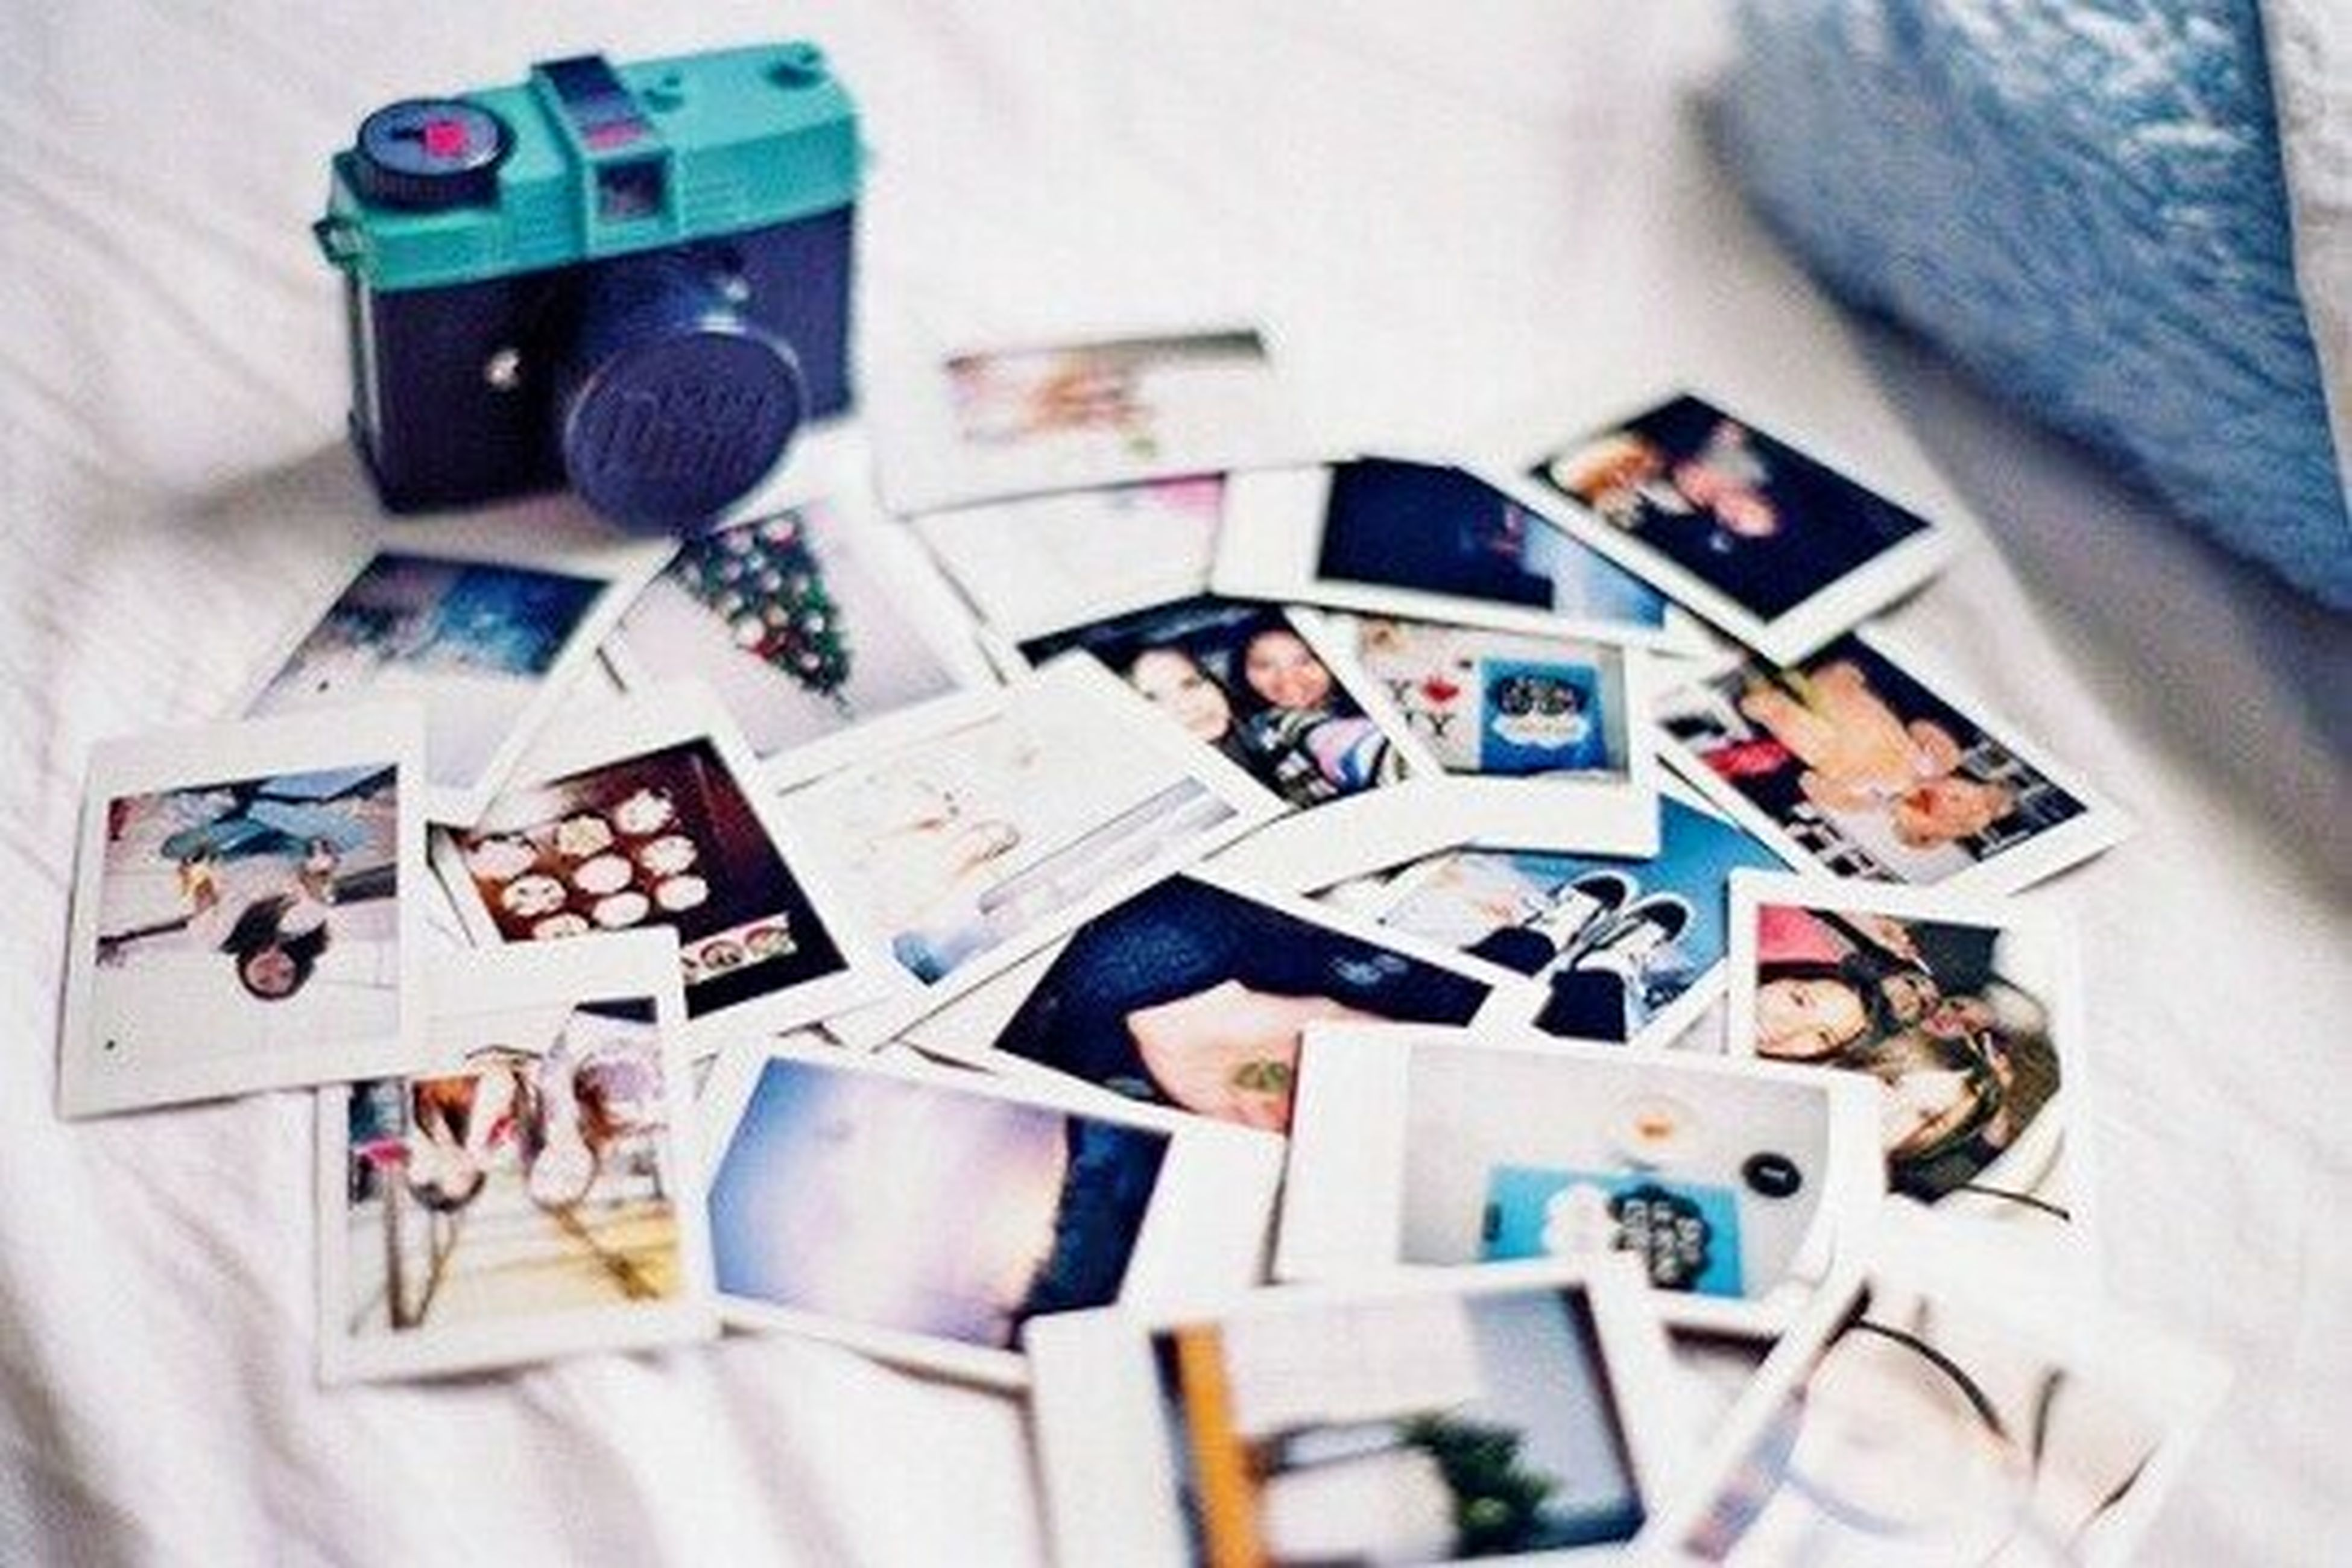 photograph, old-fashioned, retro styled, multi colored, no people, indoors, photography themes, close-up, day